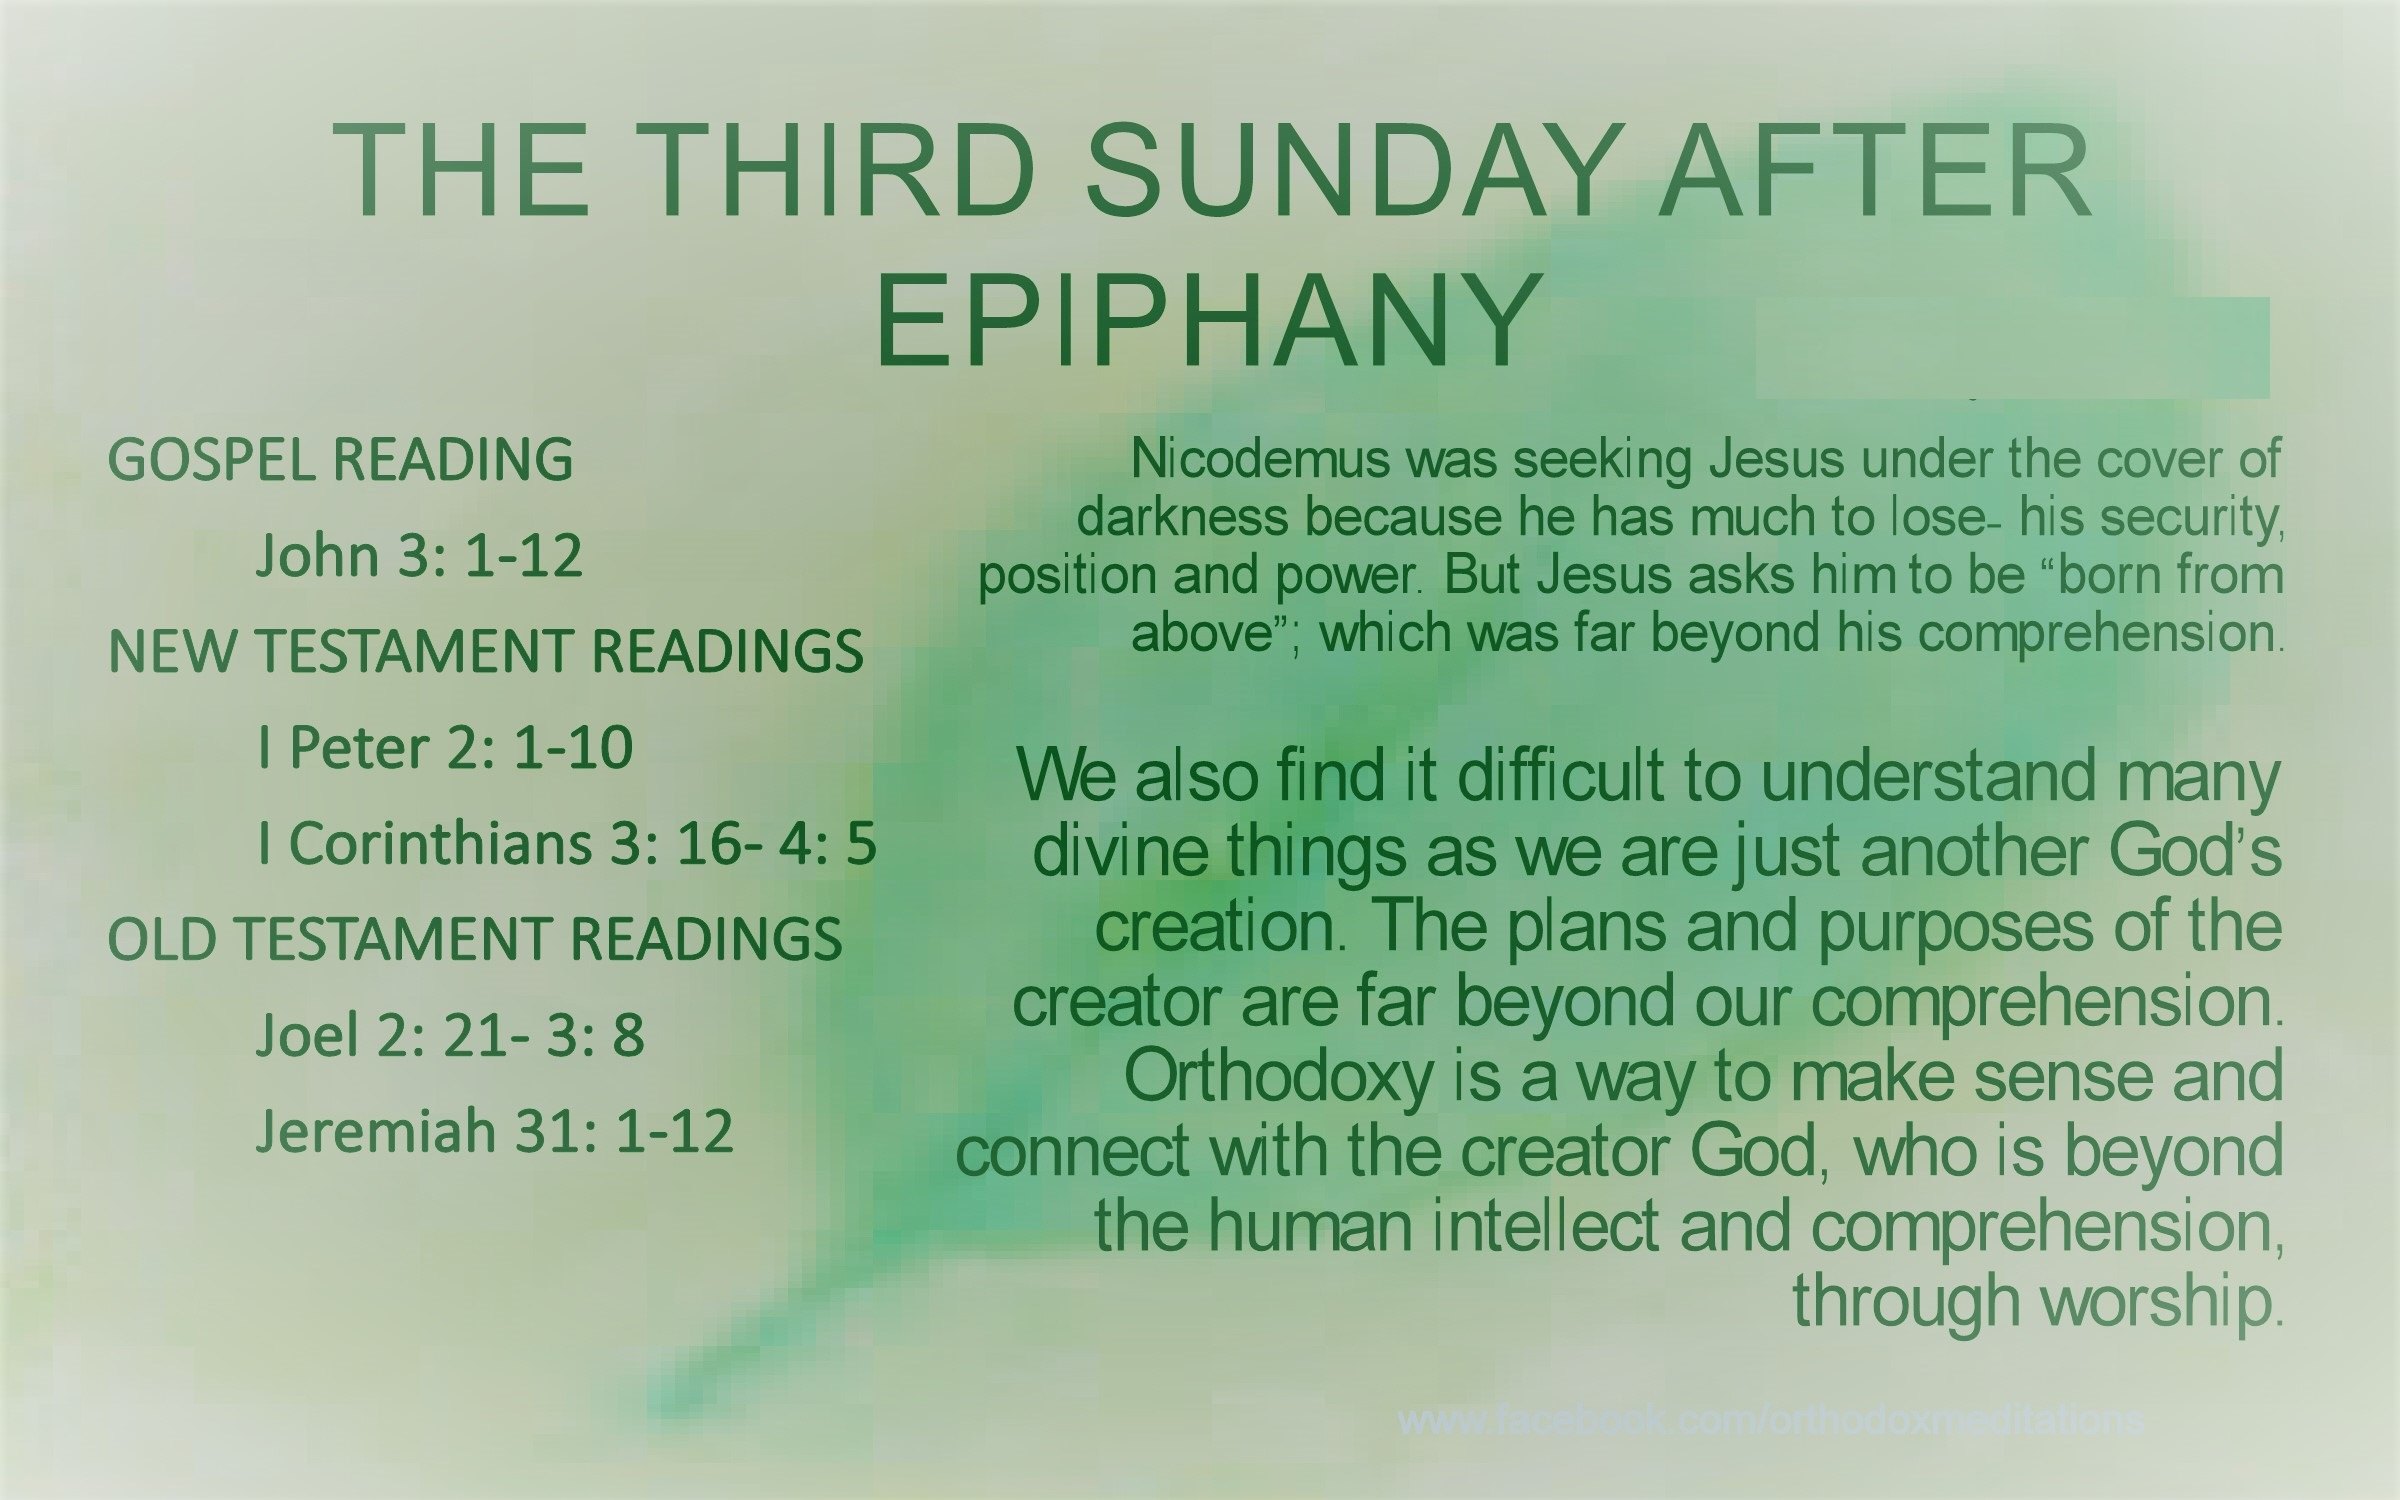 3rd-sunday-after-epiphany_001